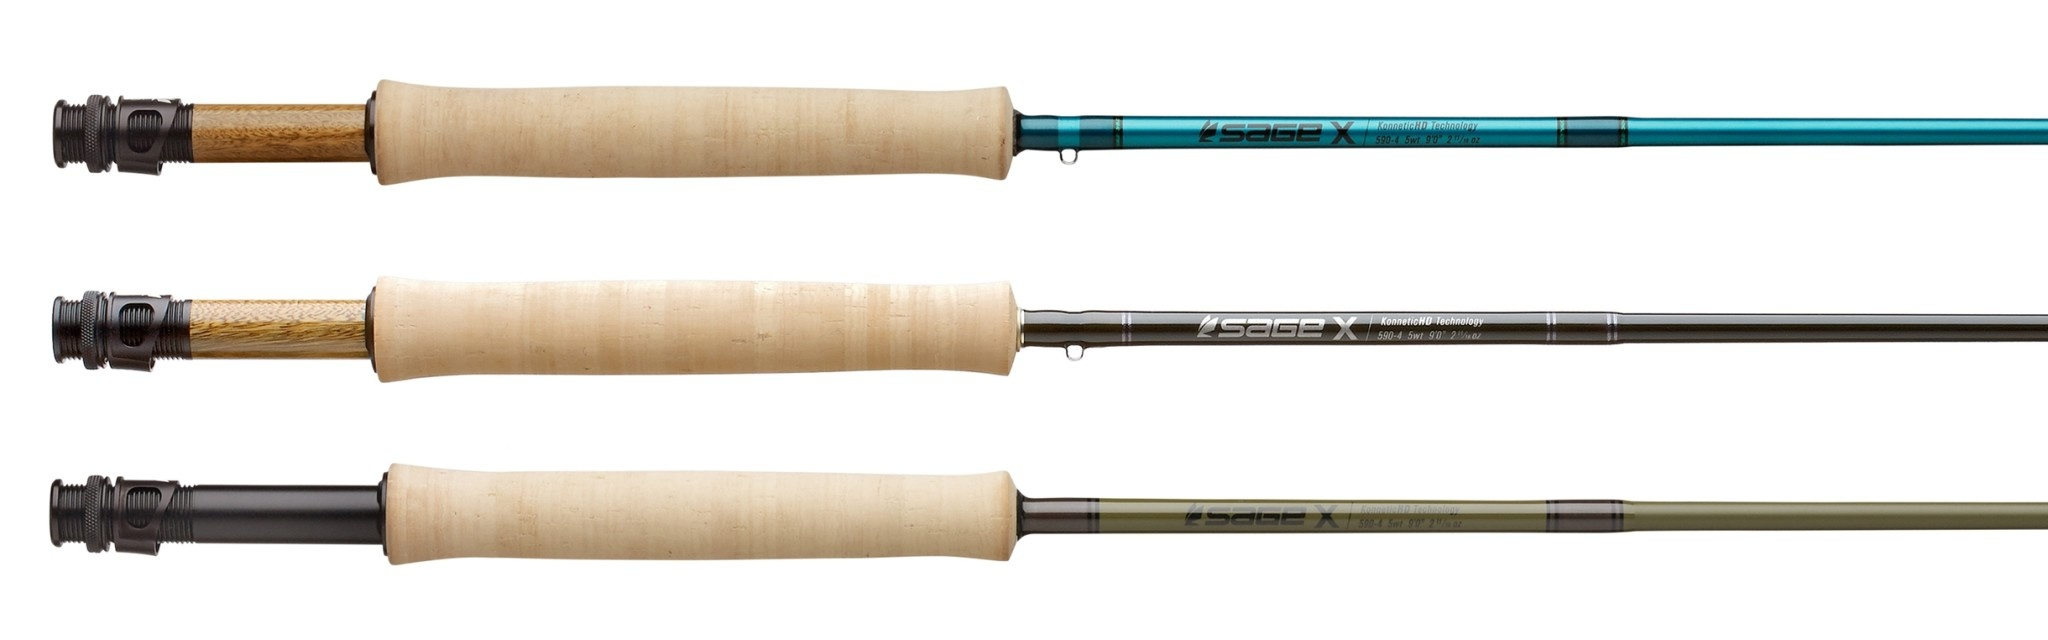 Sage Sage X Fly Rod Tactical Green, 9' 8wt